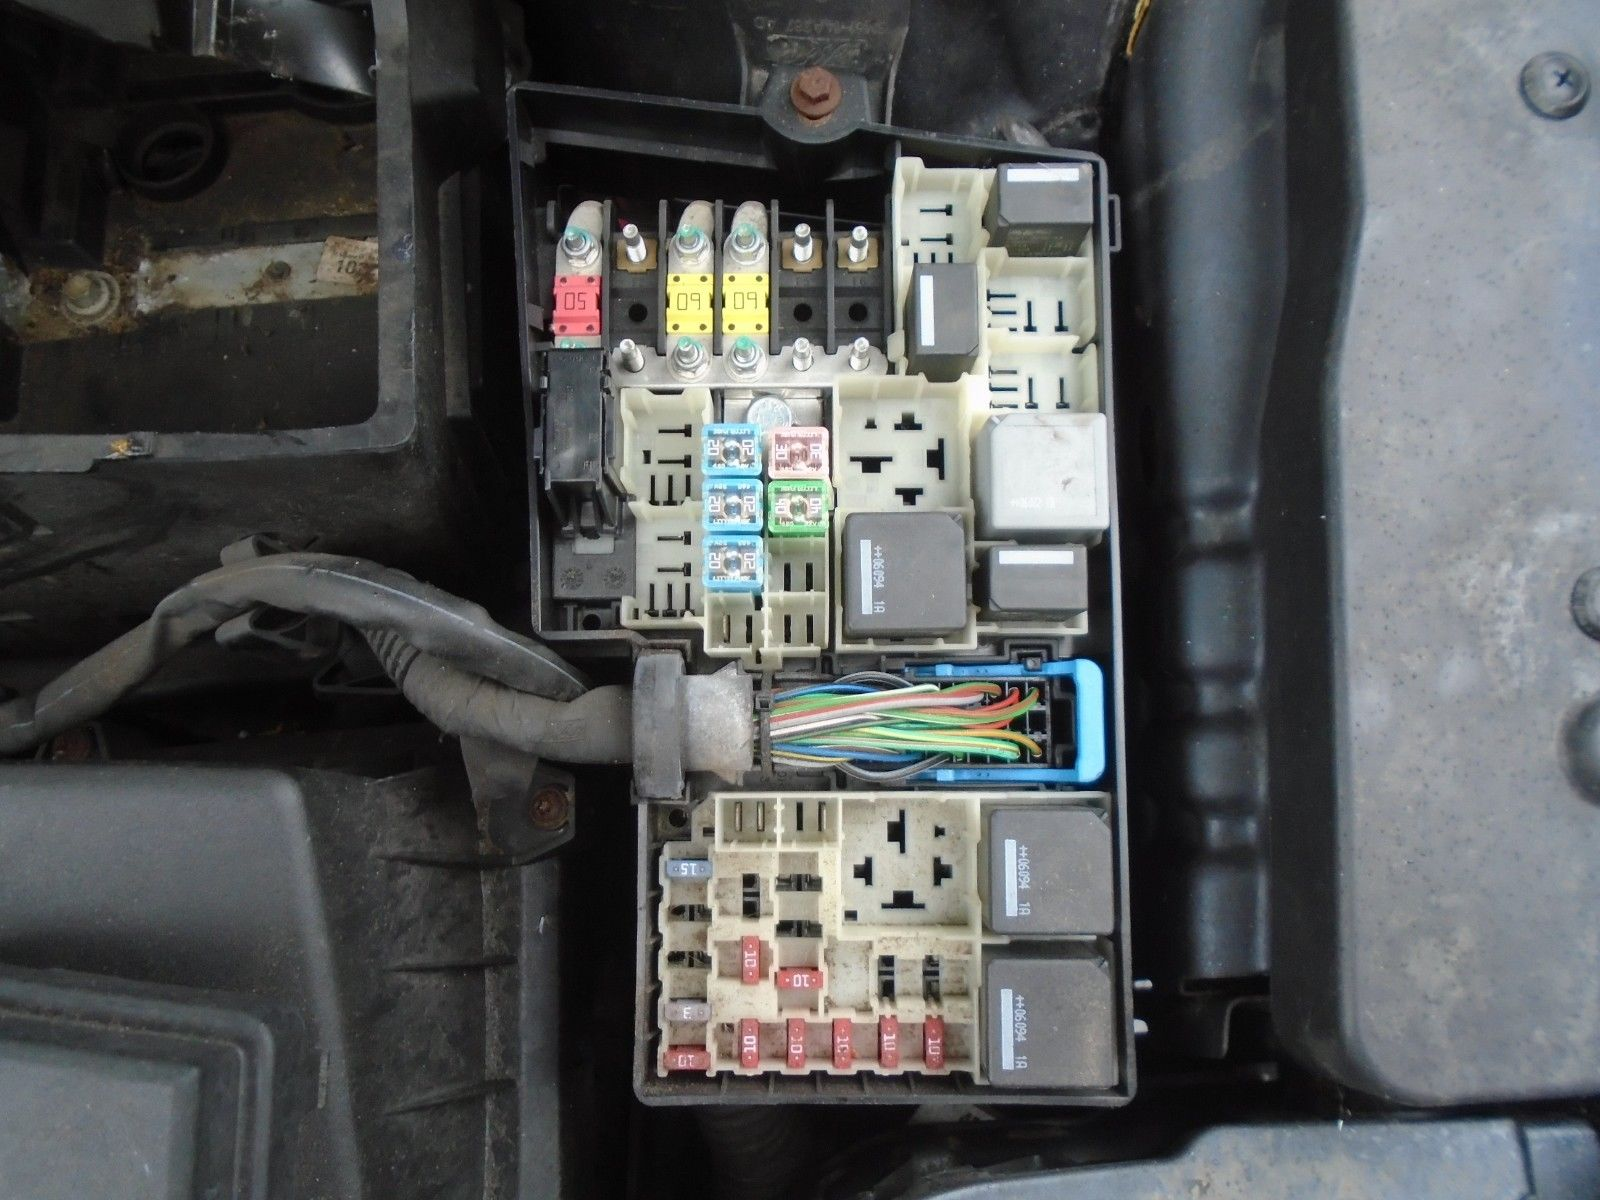 2006 Ford Focus Lx 1 6 Petrol Under Bonnet Fuse Board Box 04 08 2004 Ford  Focus Fuse Box Ford Focus Lx 2006 Fuse Box